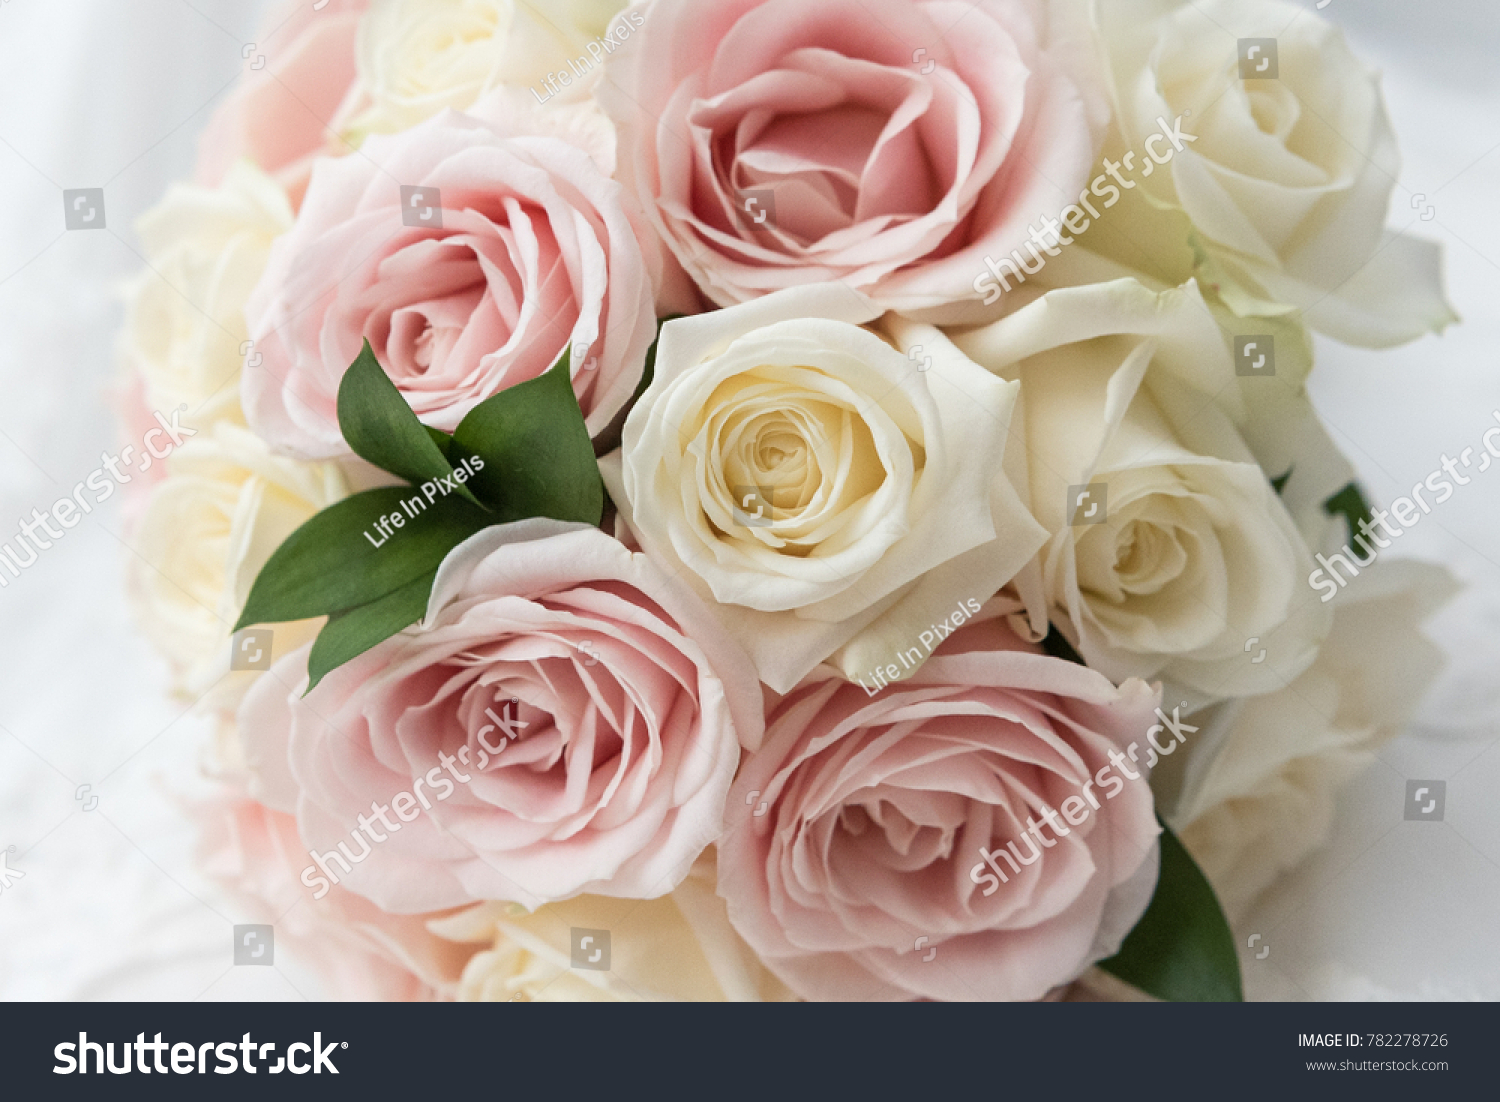 Brides Beautiful Bouquet Of Pink And White Roses On A White Lace